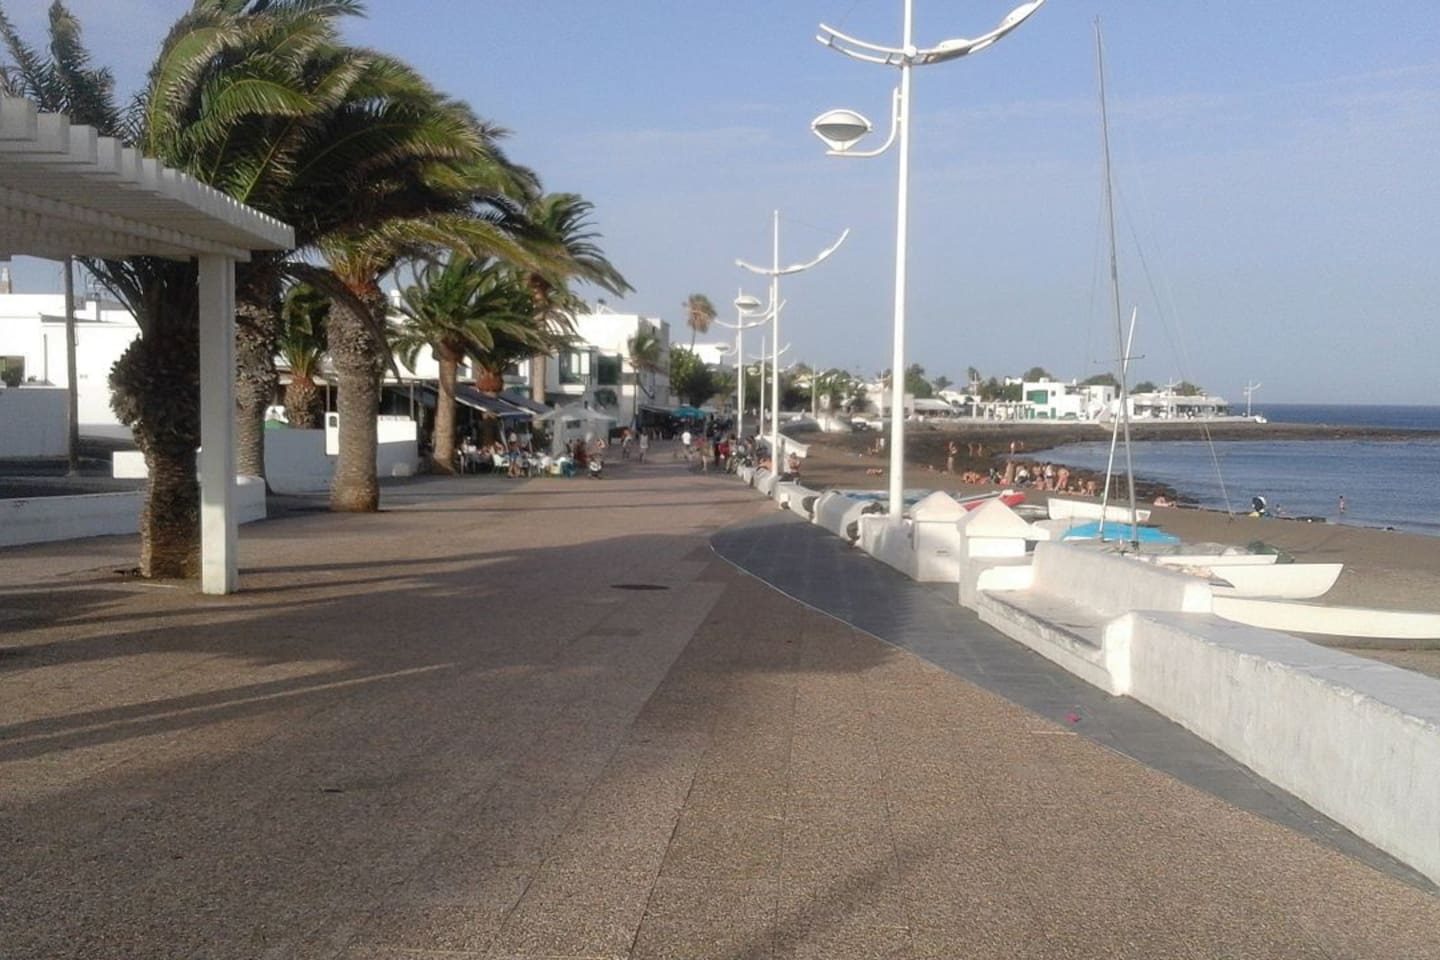 Beach walk 2 minutes from apartment. Access to Arrecife and Puerto del Carmen. Ideal for walking, jogging and cycling.